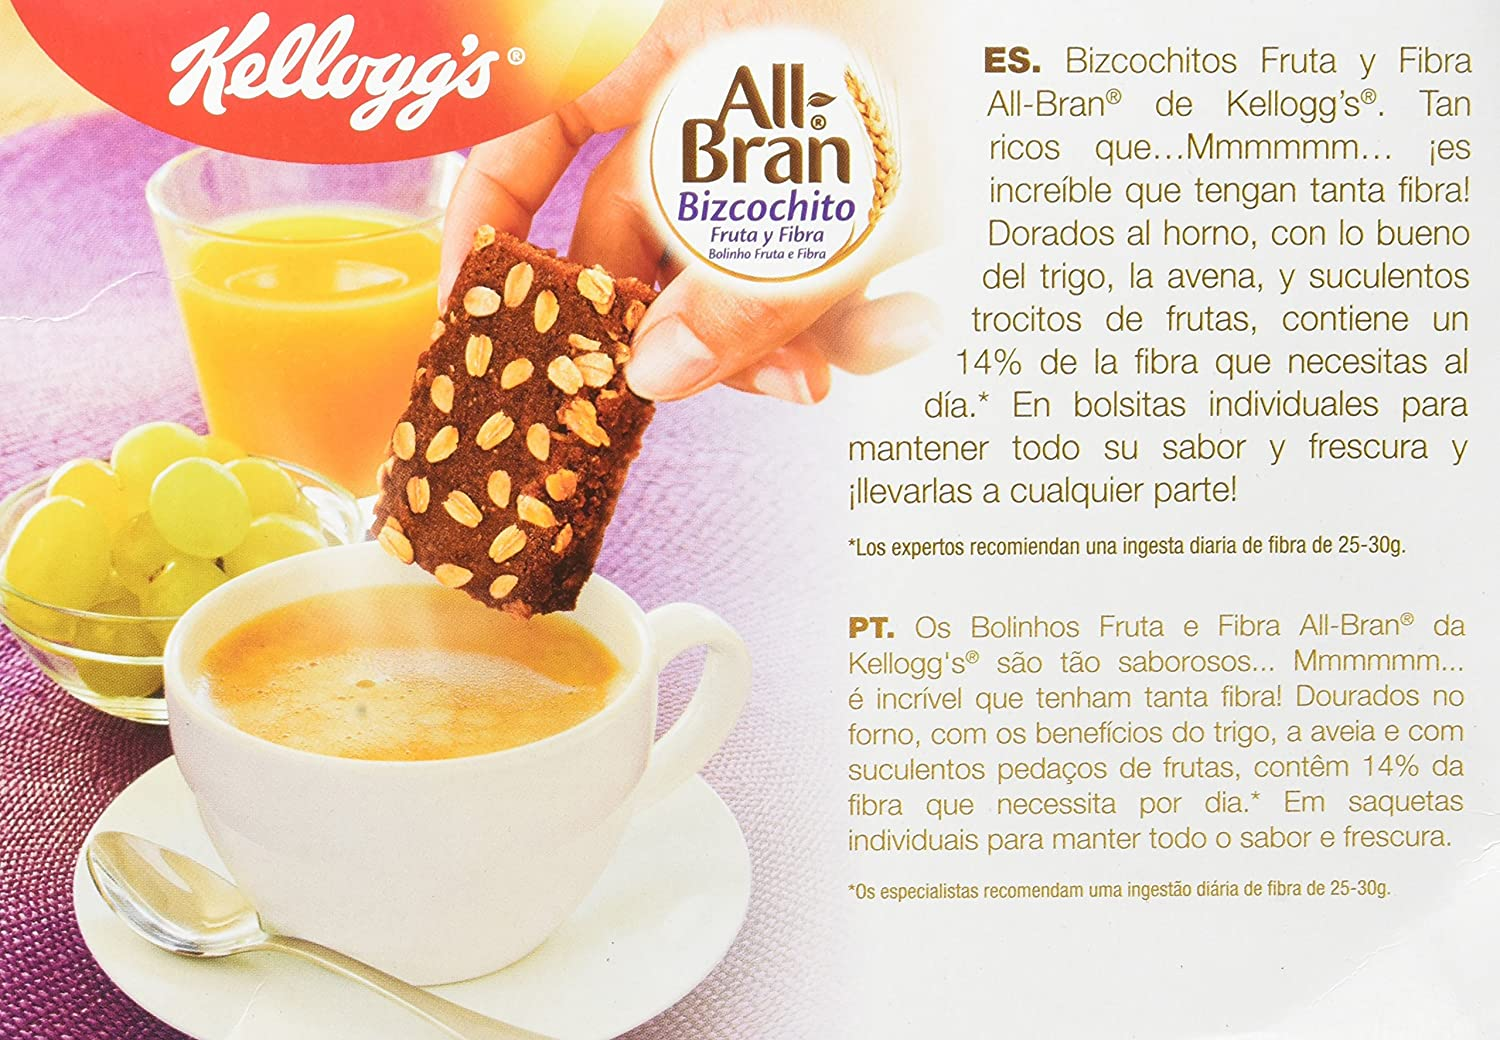 Kelloggs All Bran Bizcochito - Paquetes de 6 x 40 g - Total: 240 g